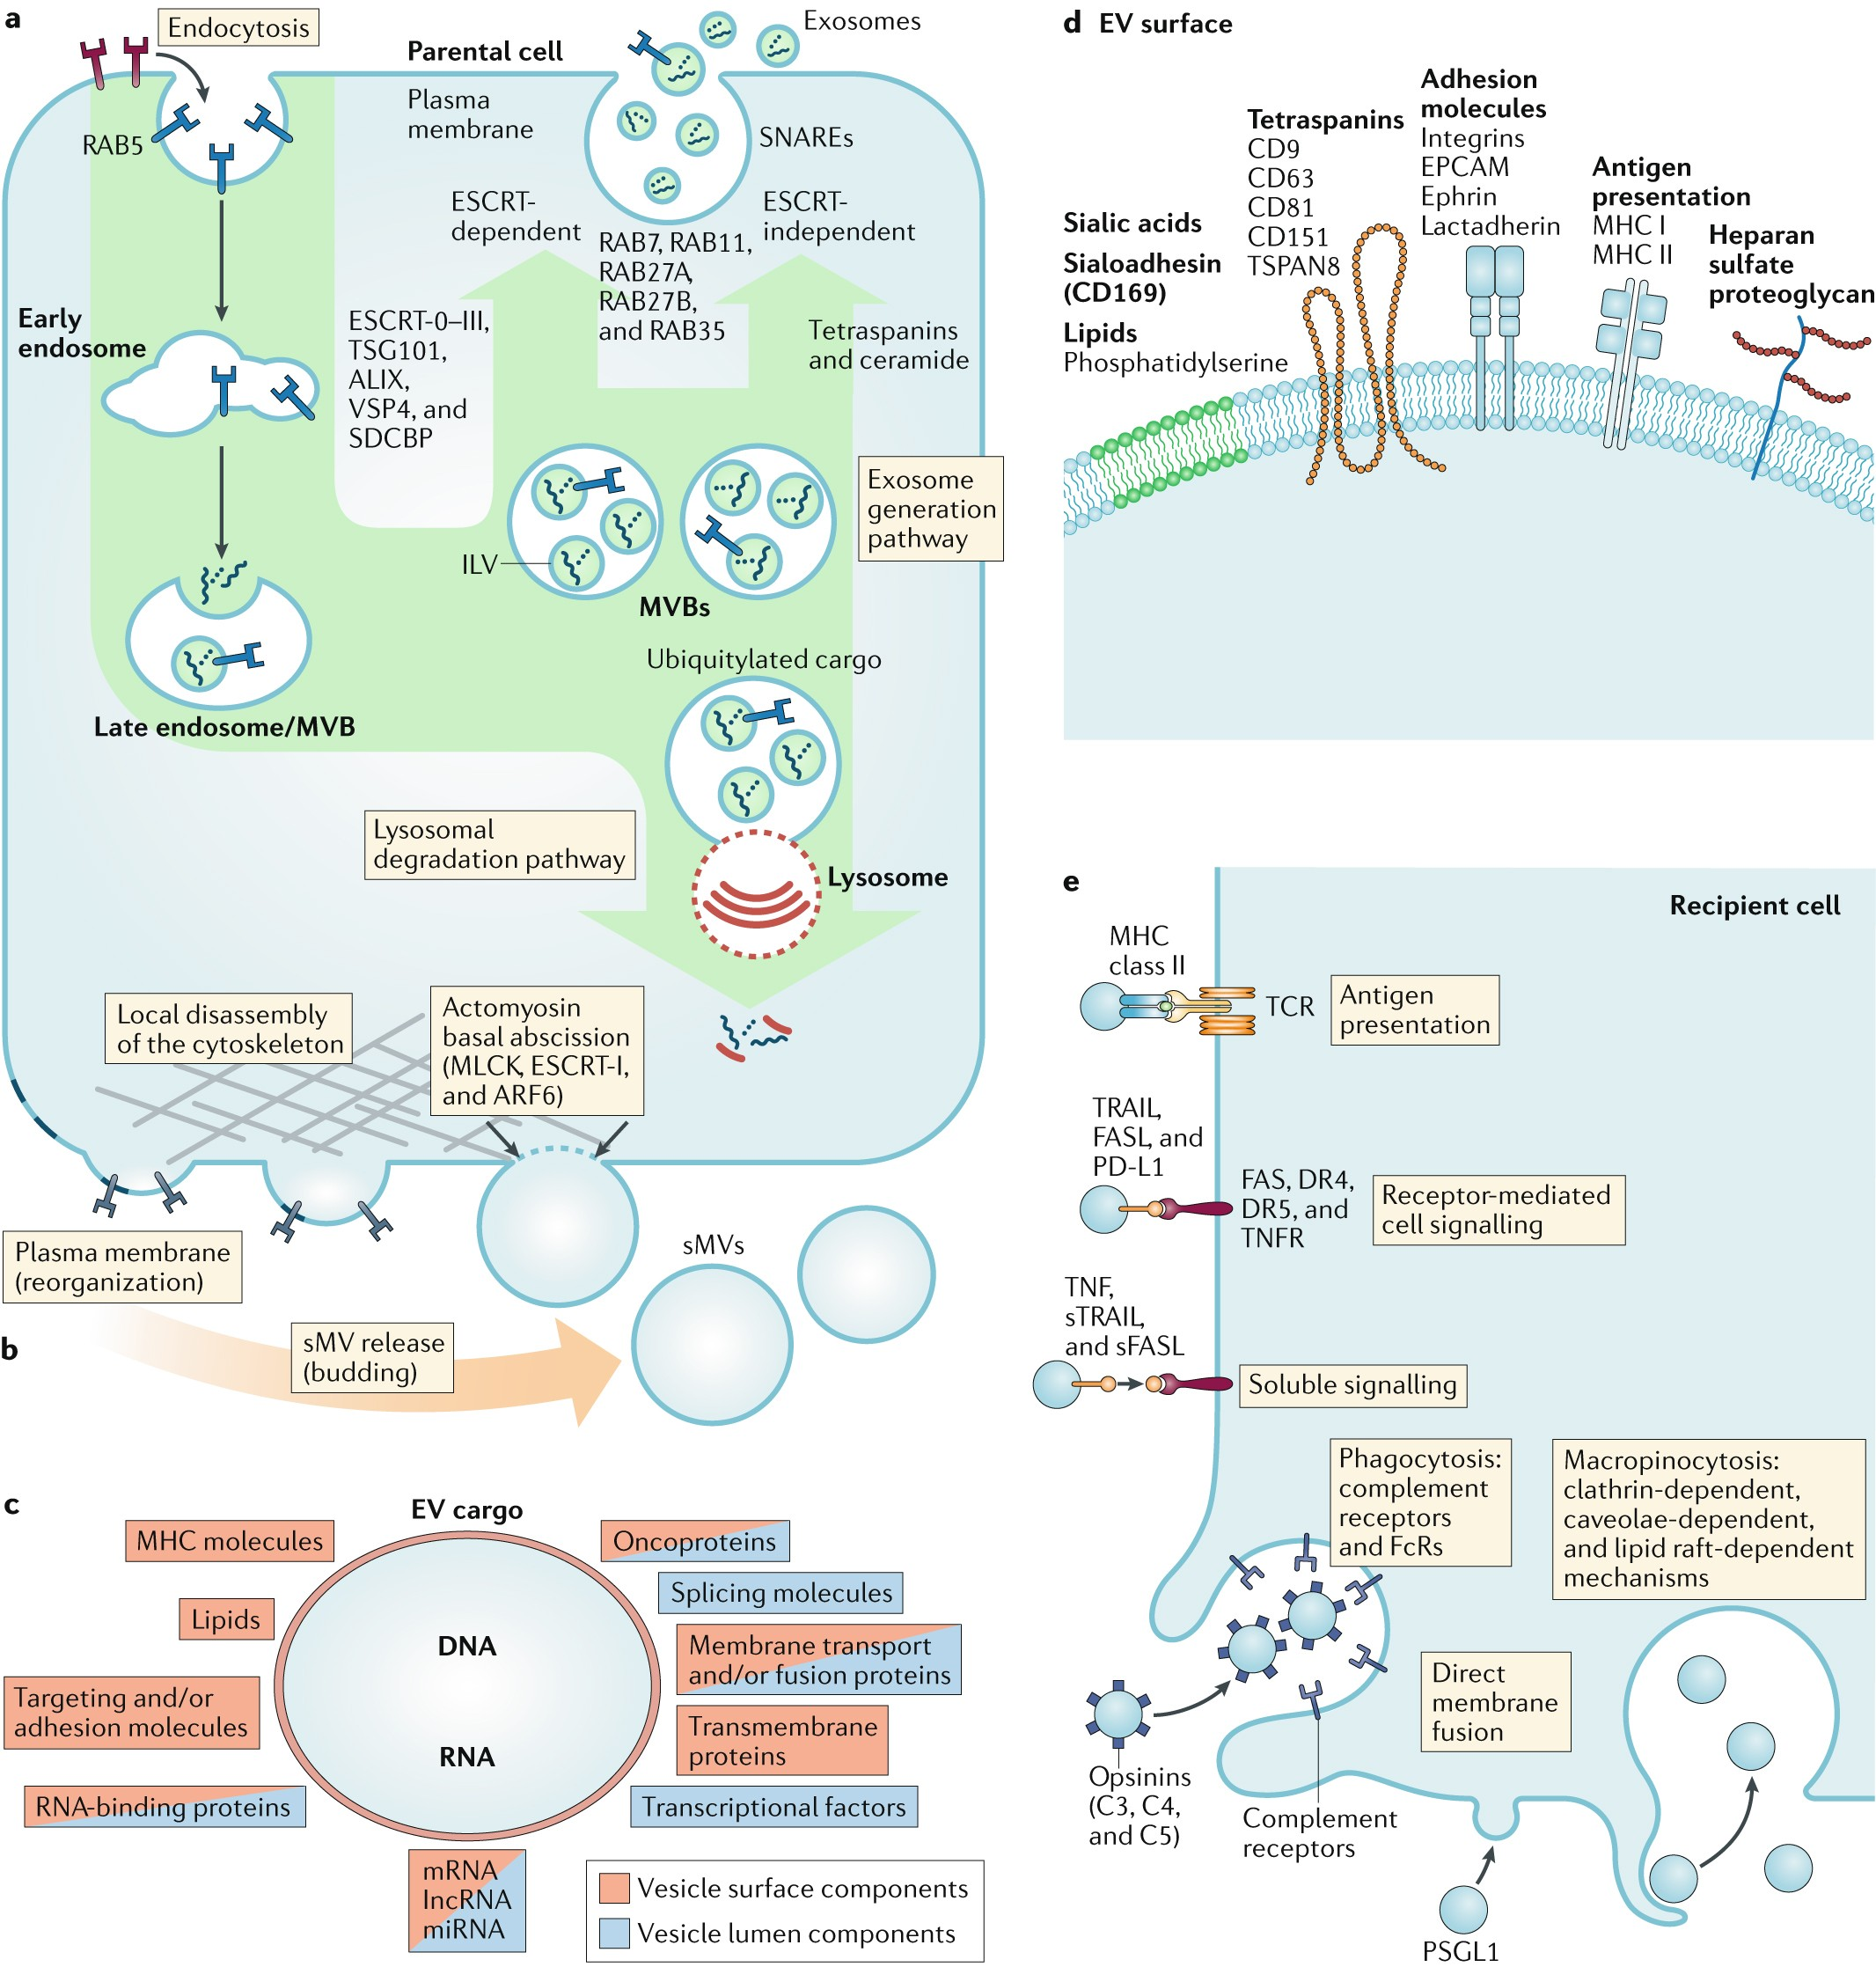 Extracellular vesicles in cancer — implications for future improvements in  cancer care | Nature Reviews Clinical Oncology